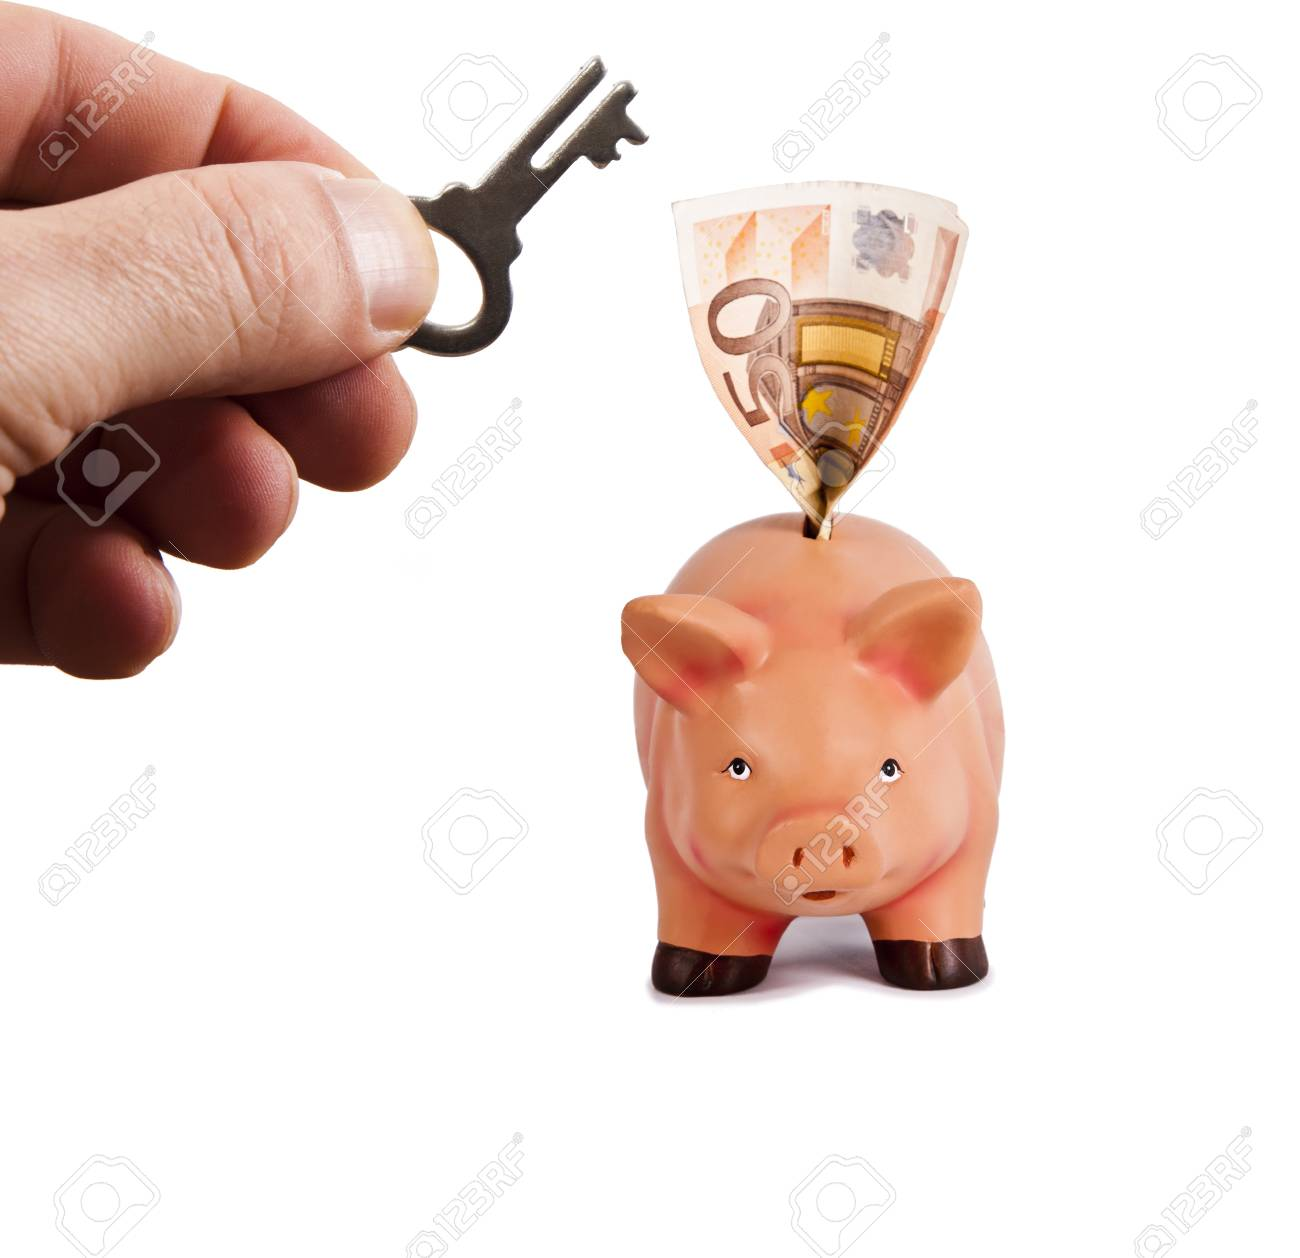 hand with key open the piggy bank for savings Stock Photo - 18877107